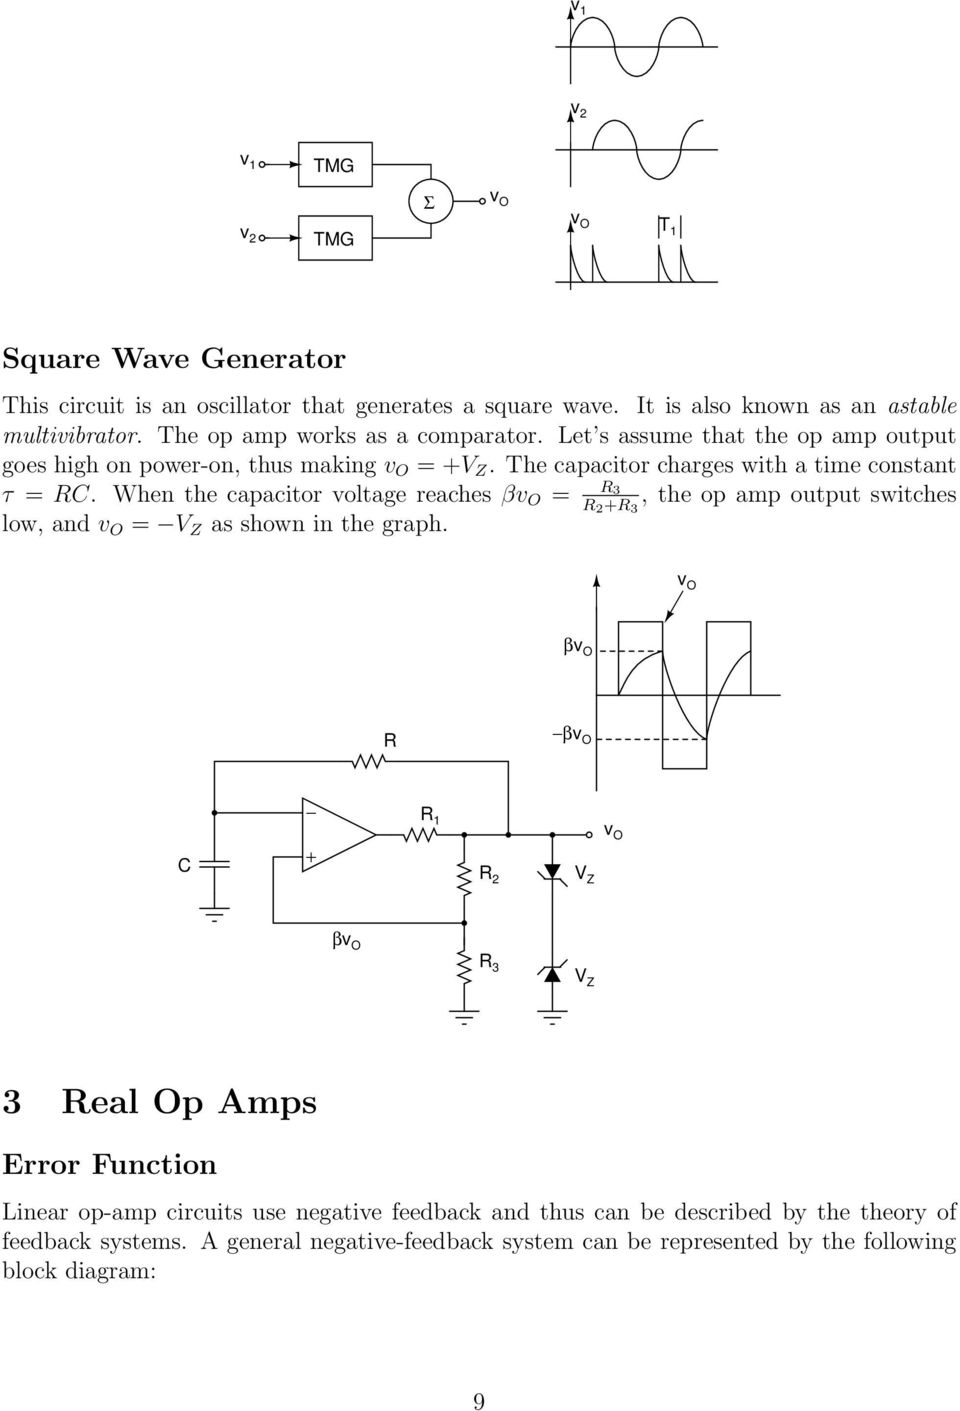 Basic Op Amp Circuits Pdf Negative Voltage Generator Circuit Diagram Using Ic 555 When The Capacitor Reaches V O R 3